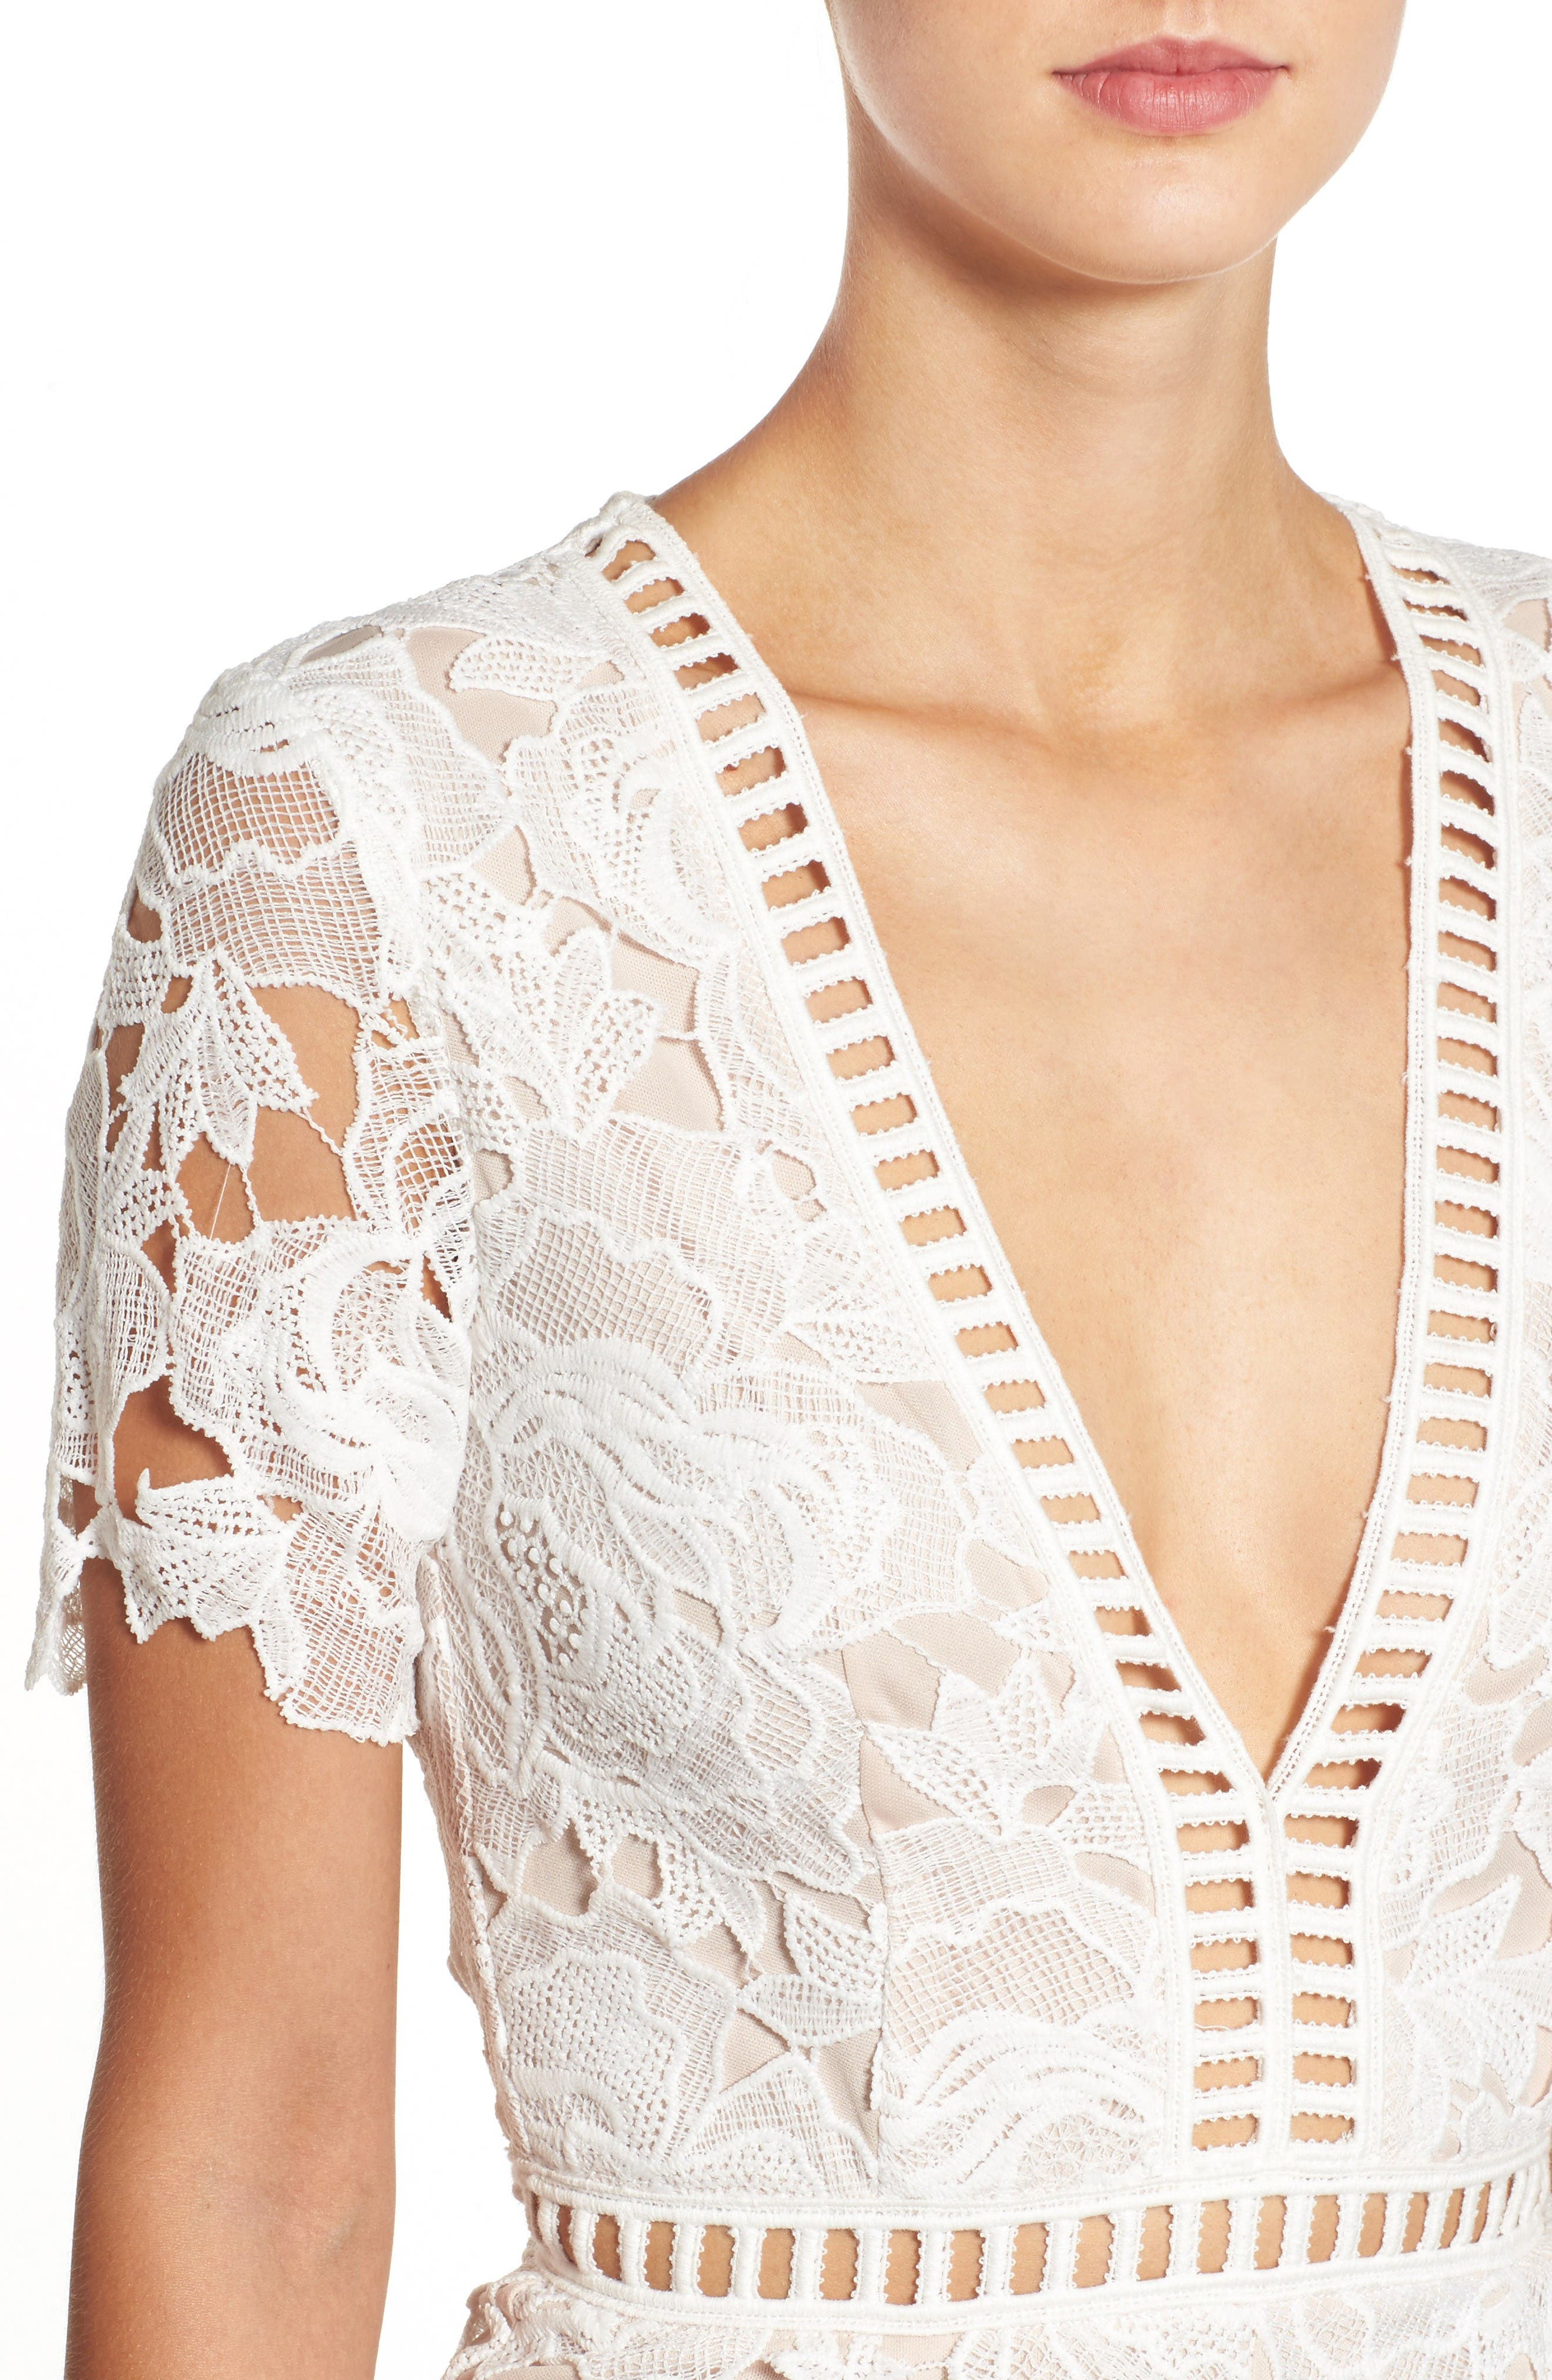 Ladder Inset Lace Romper,                             Alternate thumbnail 5, color,                             White/ Nude